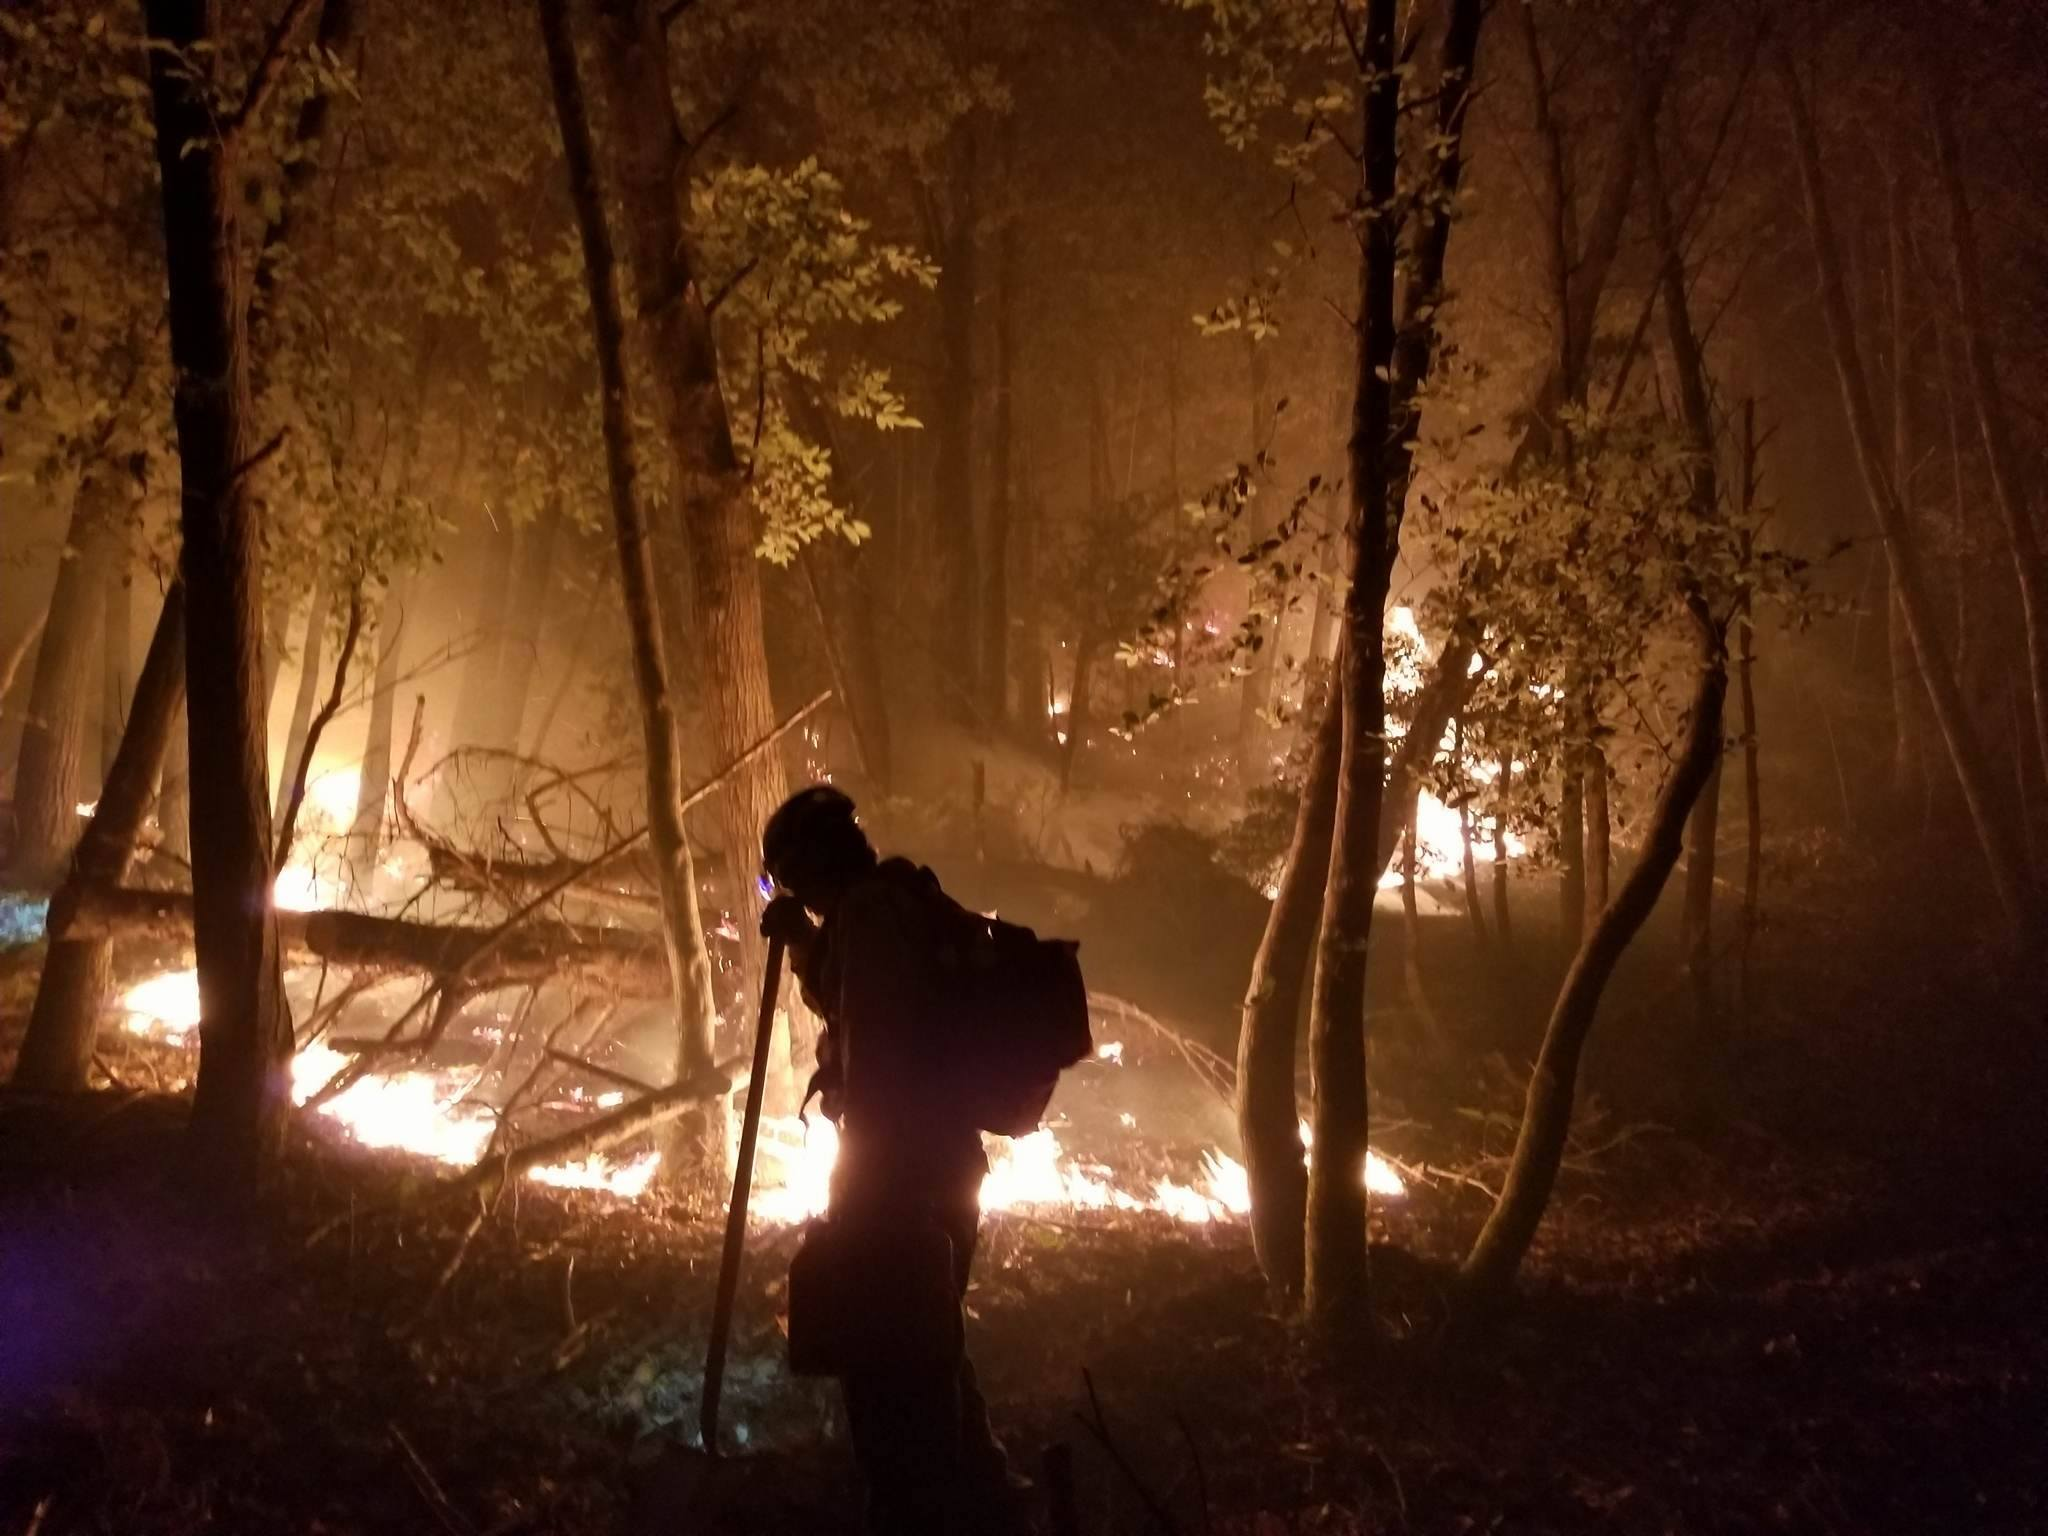 Firefighter Martin Lopez shared these photographs of night burnout operations on the Chetco Bar Fire. Photo via Rogue River-Siskiyou National